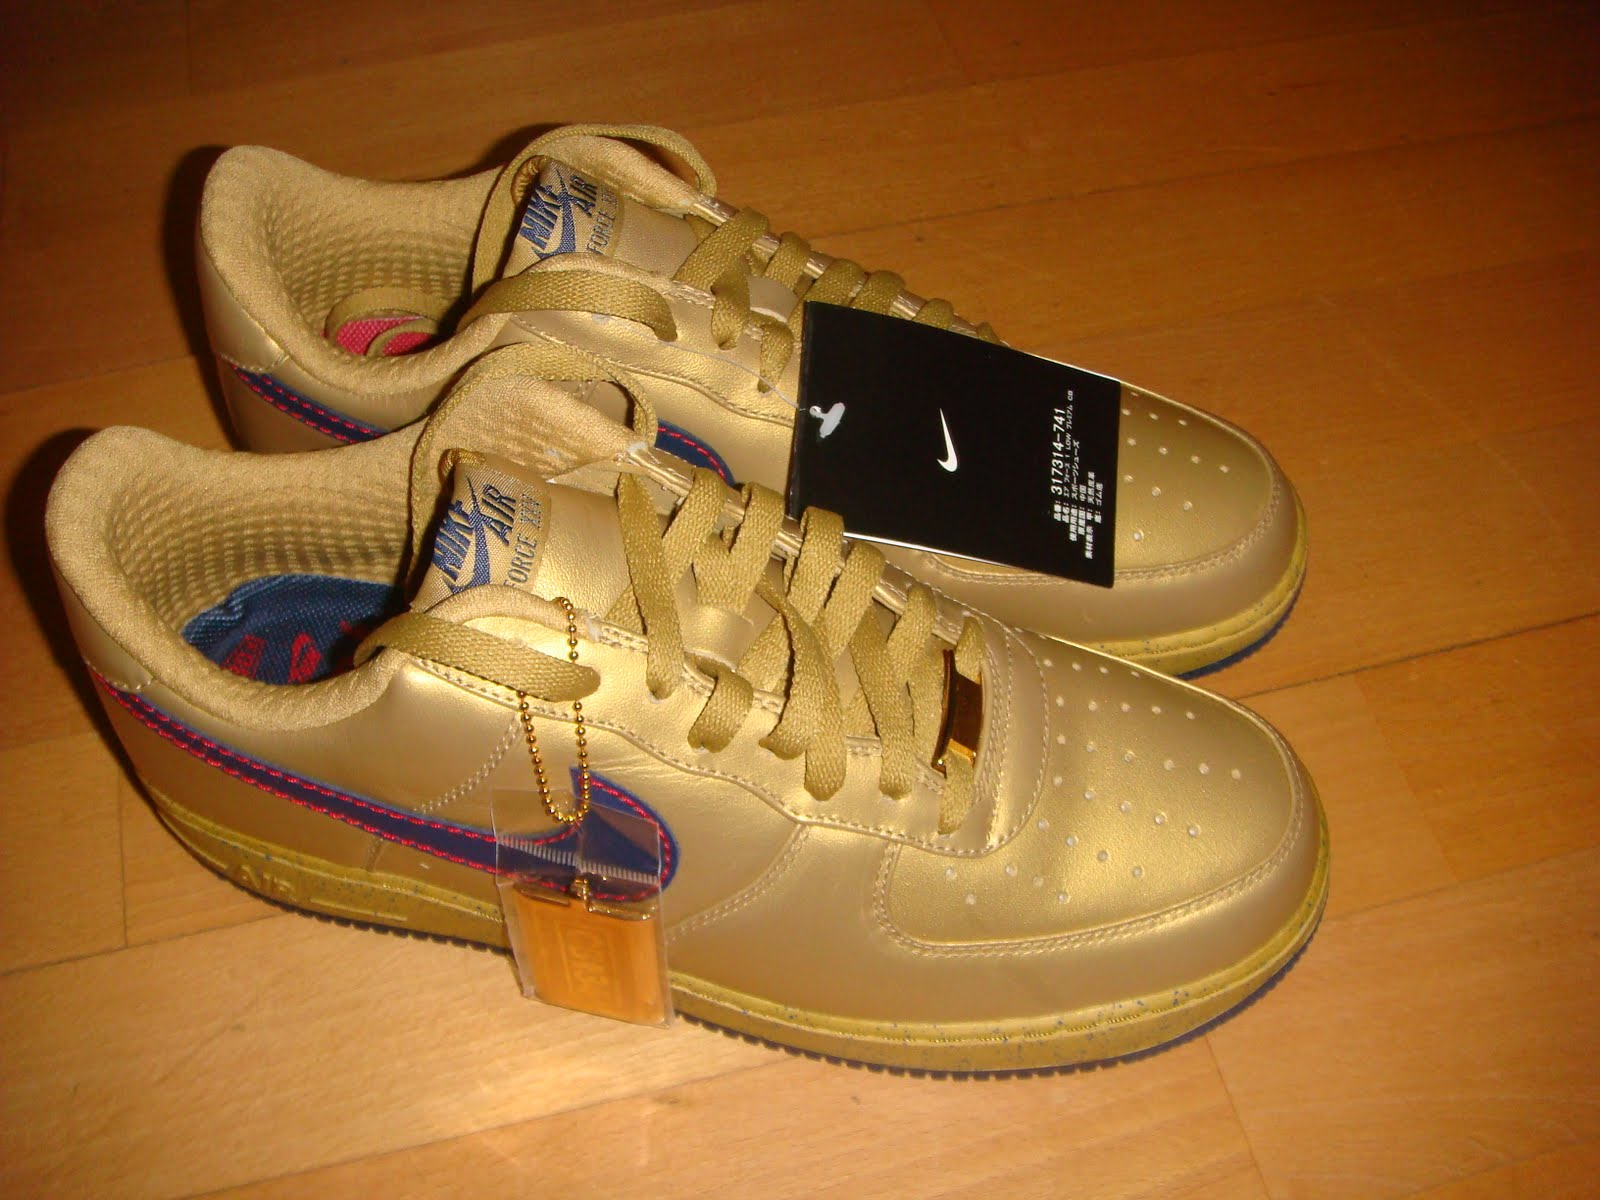 fafe4264346881 ... italy then i couldnt stop collecting i now have about 7 pairs of nike  af 1